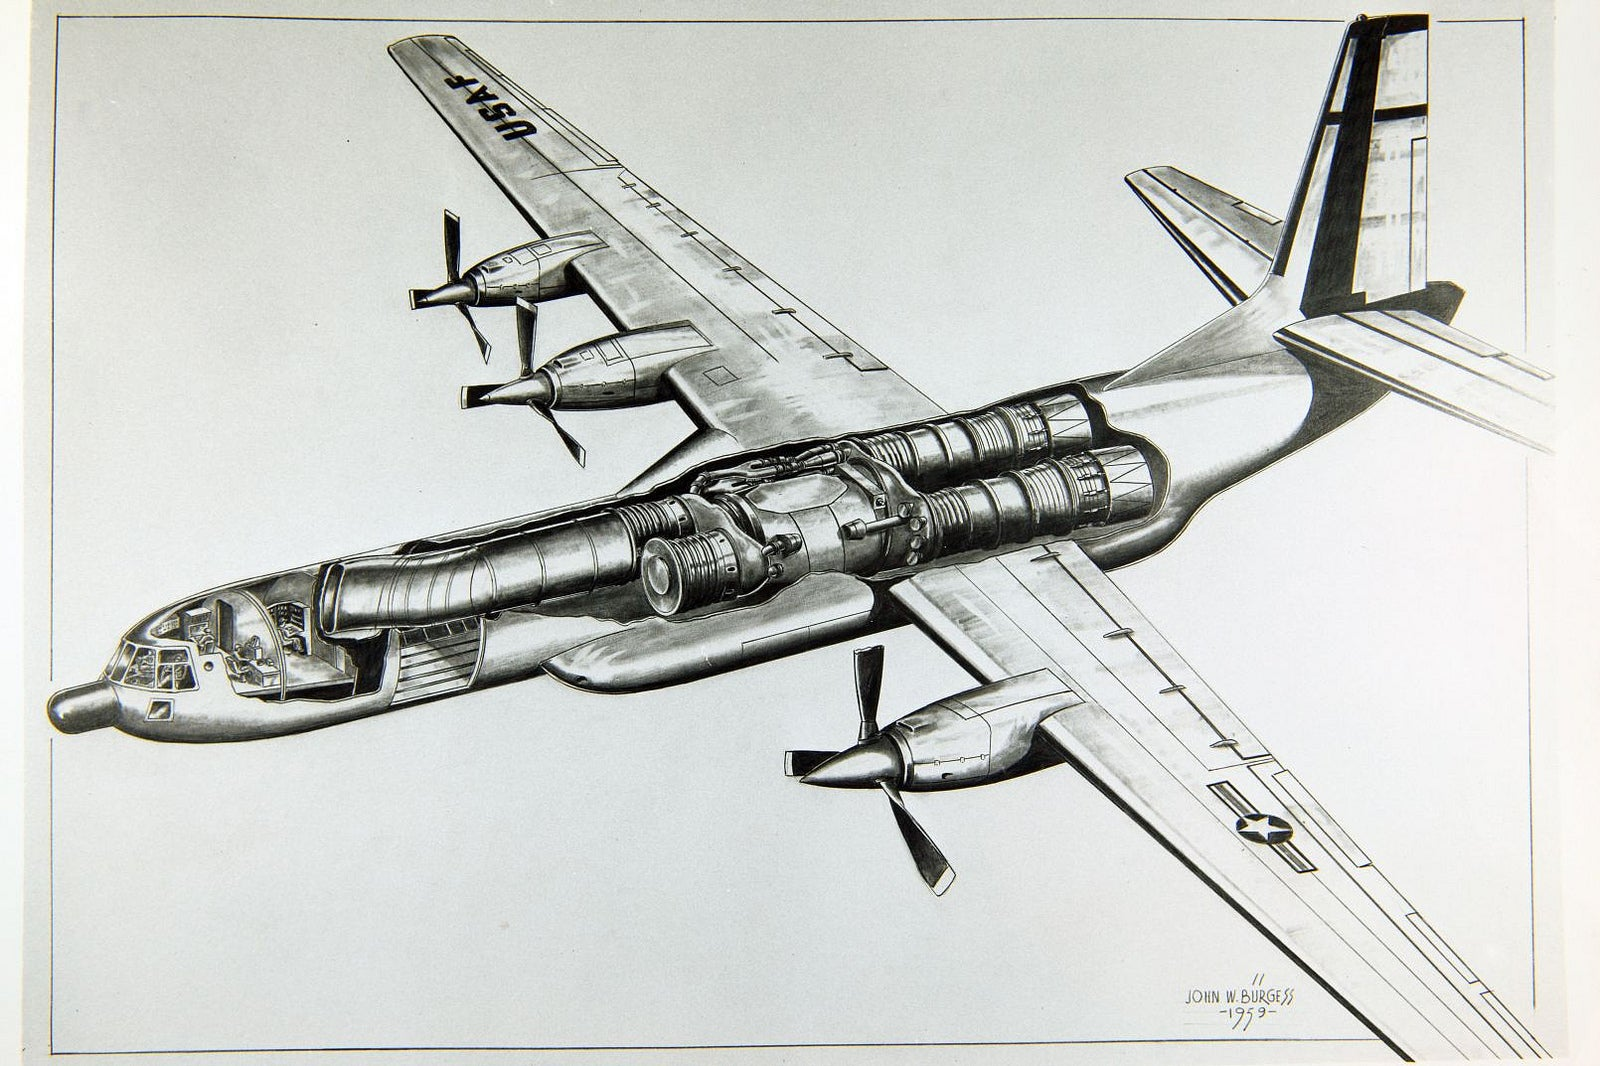 Feast Your Eyes On These Rare Aircraft Cutaway Drawings ...